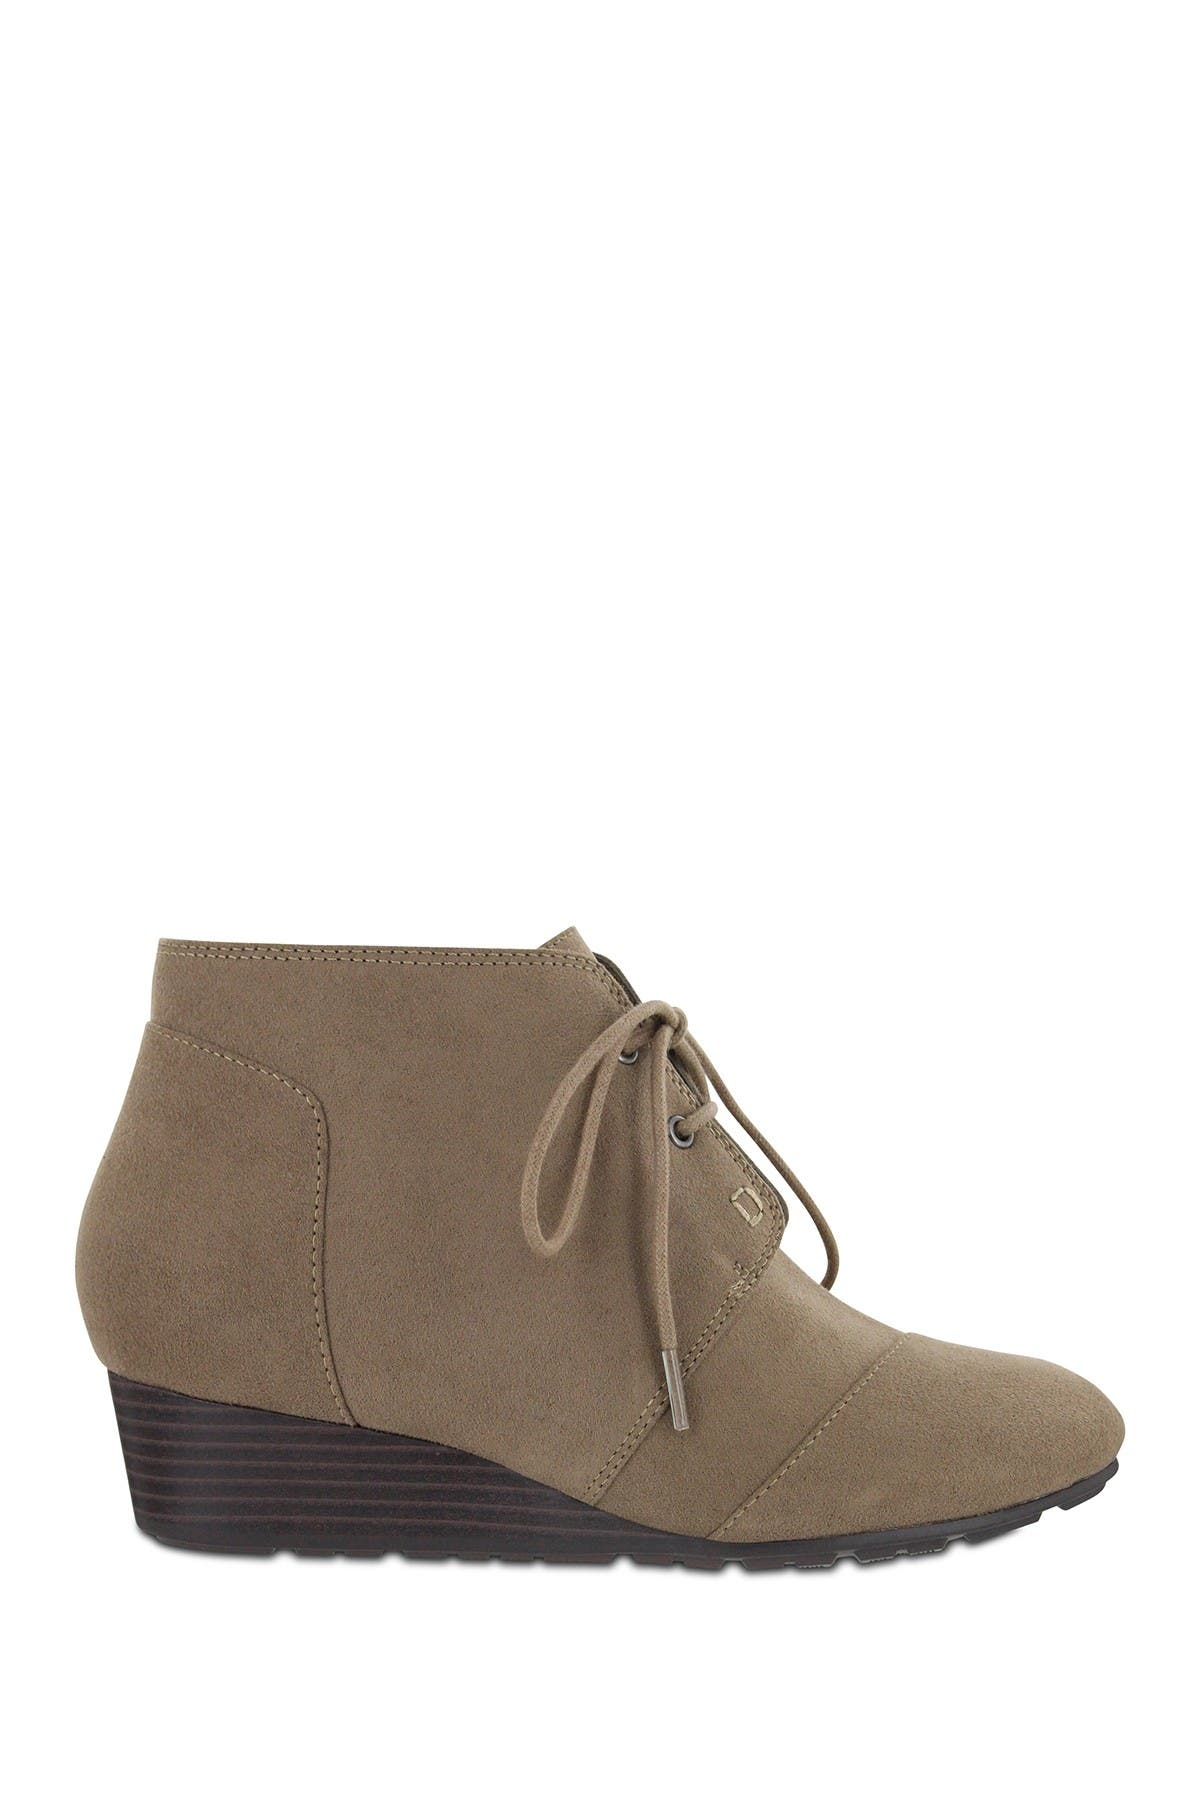 MIA AMORE | Sarah Lace-Up Wedge Bootie